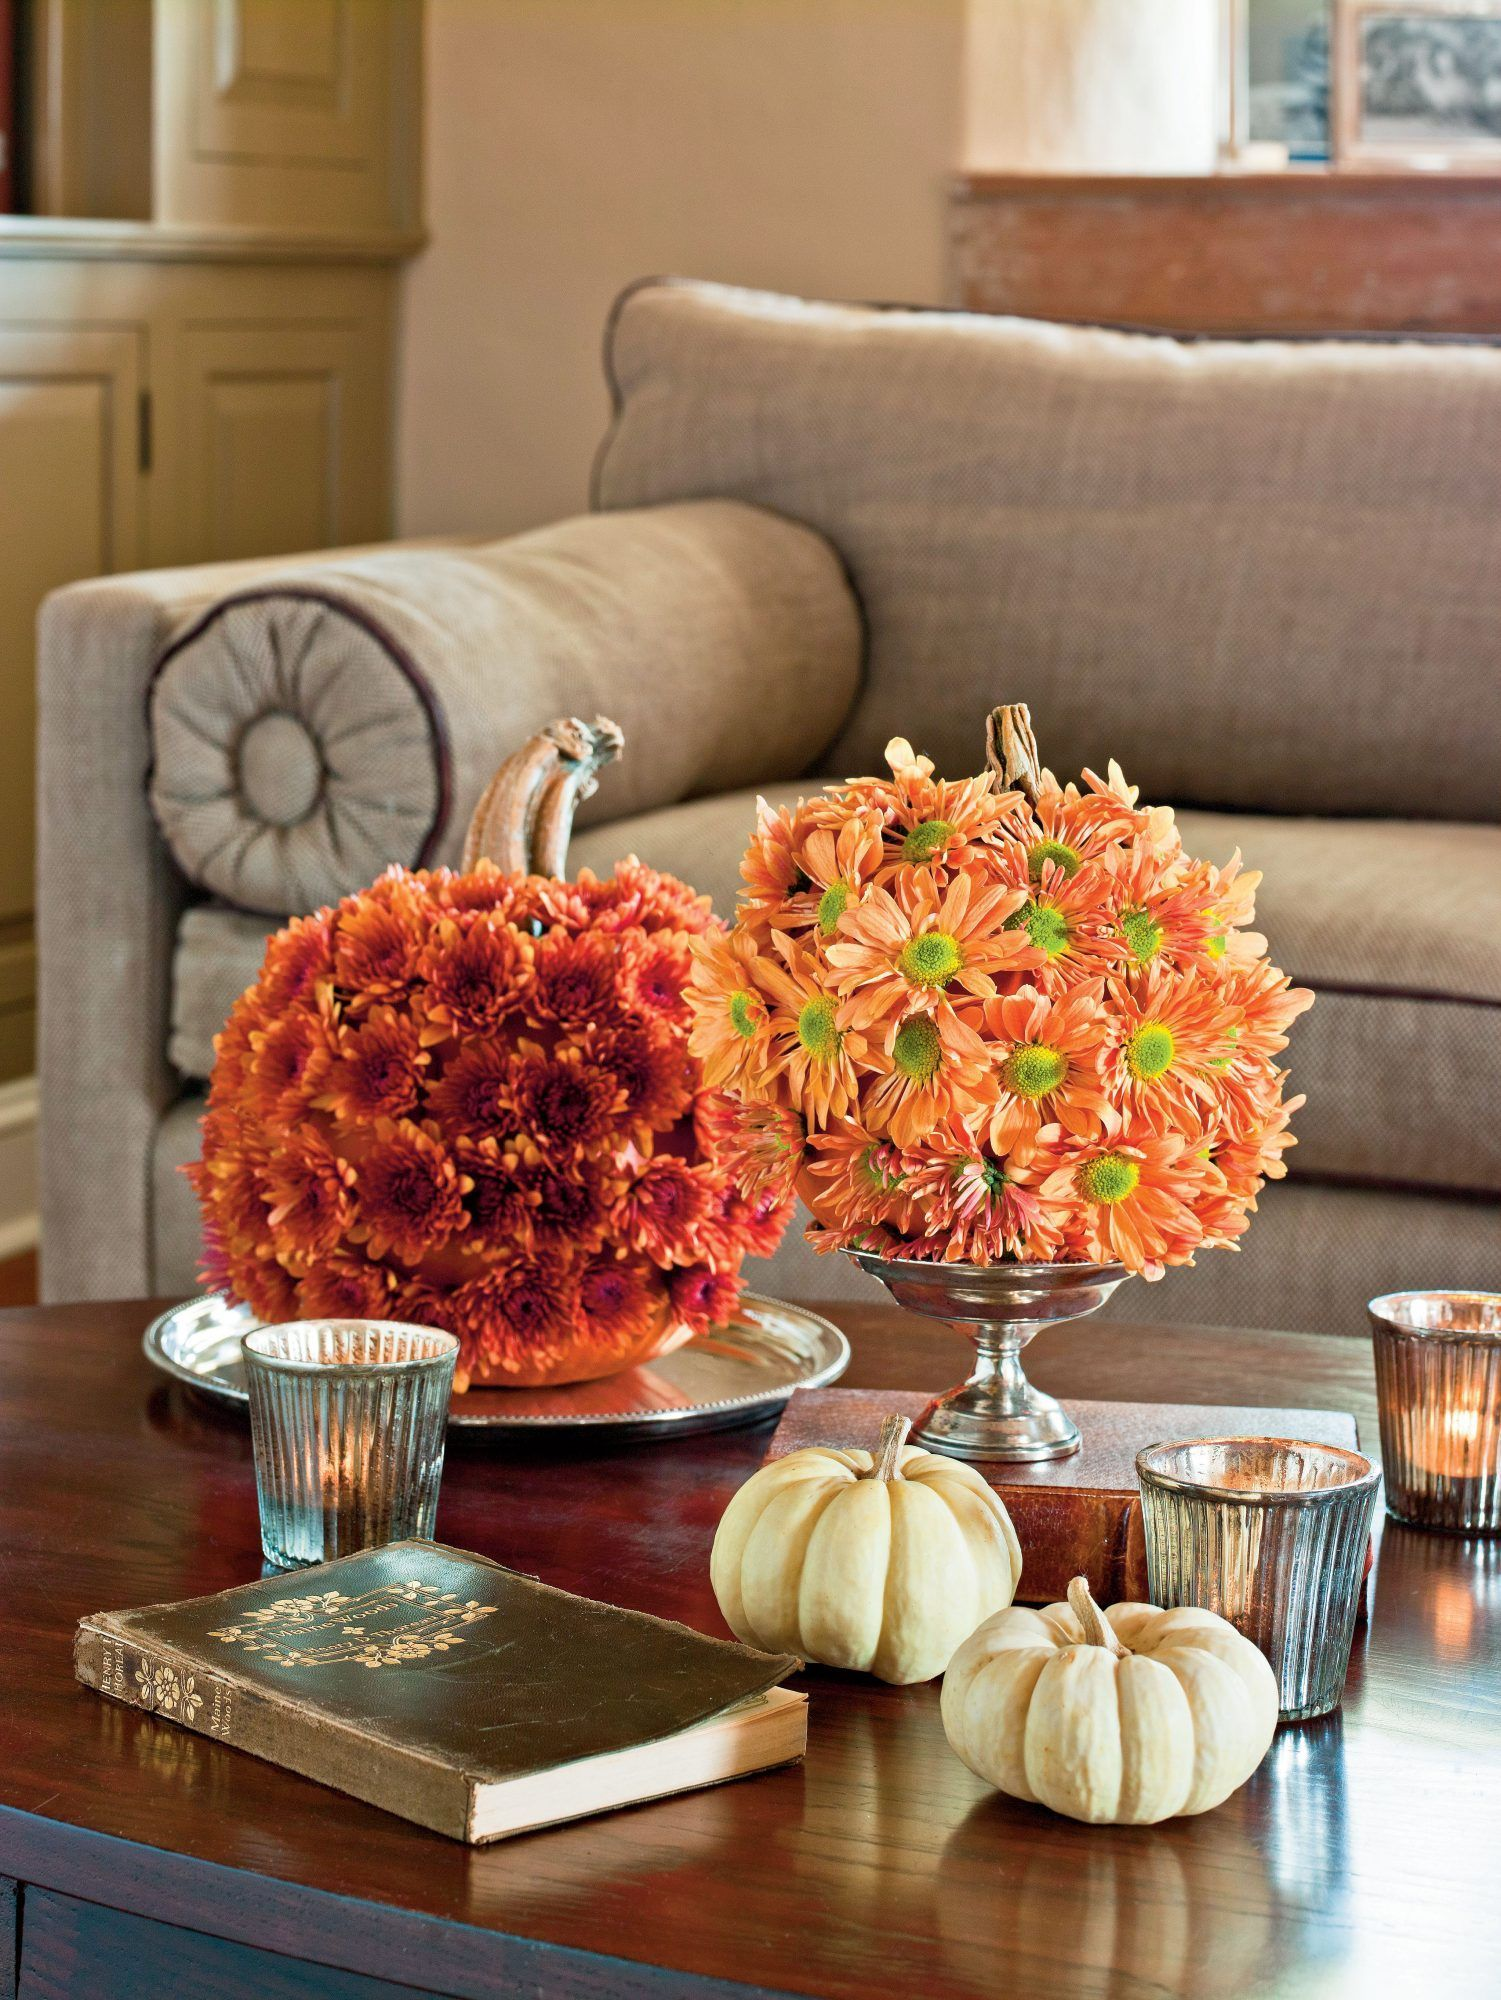 Autumn Centerpieces To Complete Your Fall Feast Fall Centerpiece Fall Table Decor Fall Table